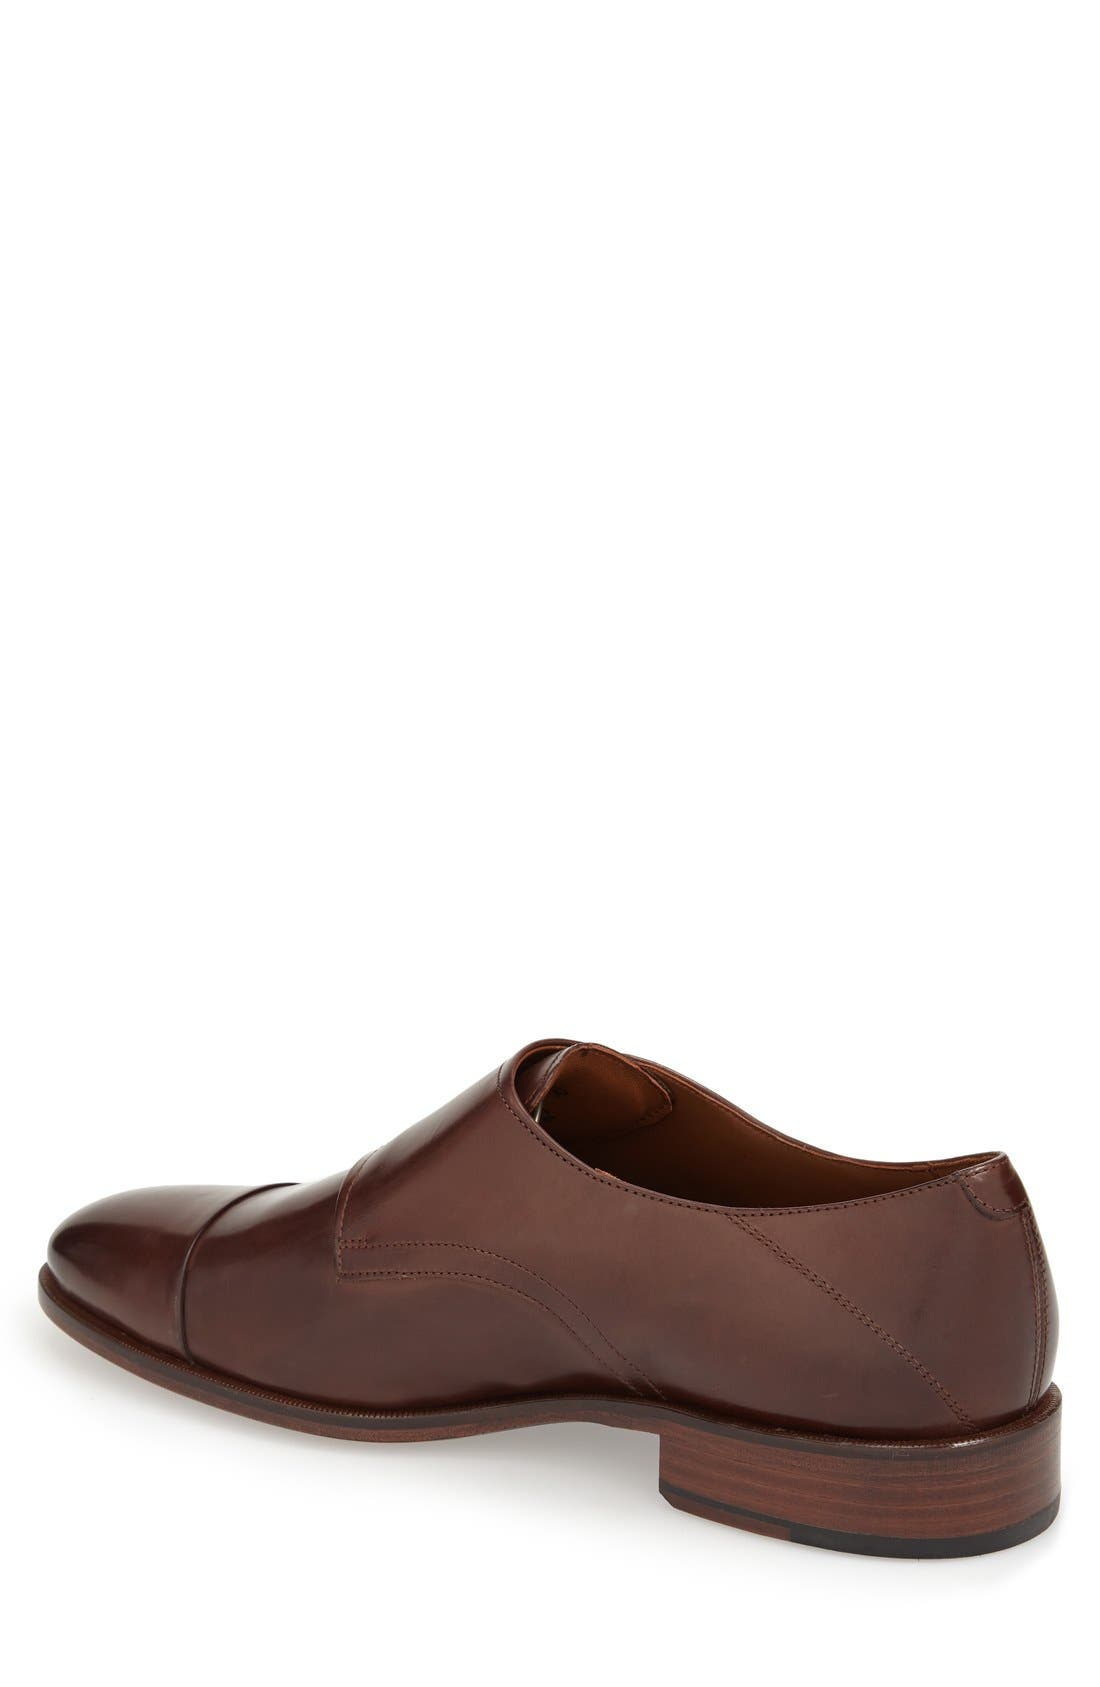 Alternate Image 2  - Johnston & Murphy 'Nolen' Double Monk Strap Shoe (Men)